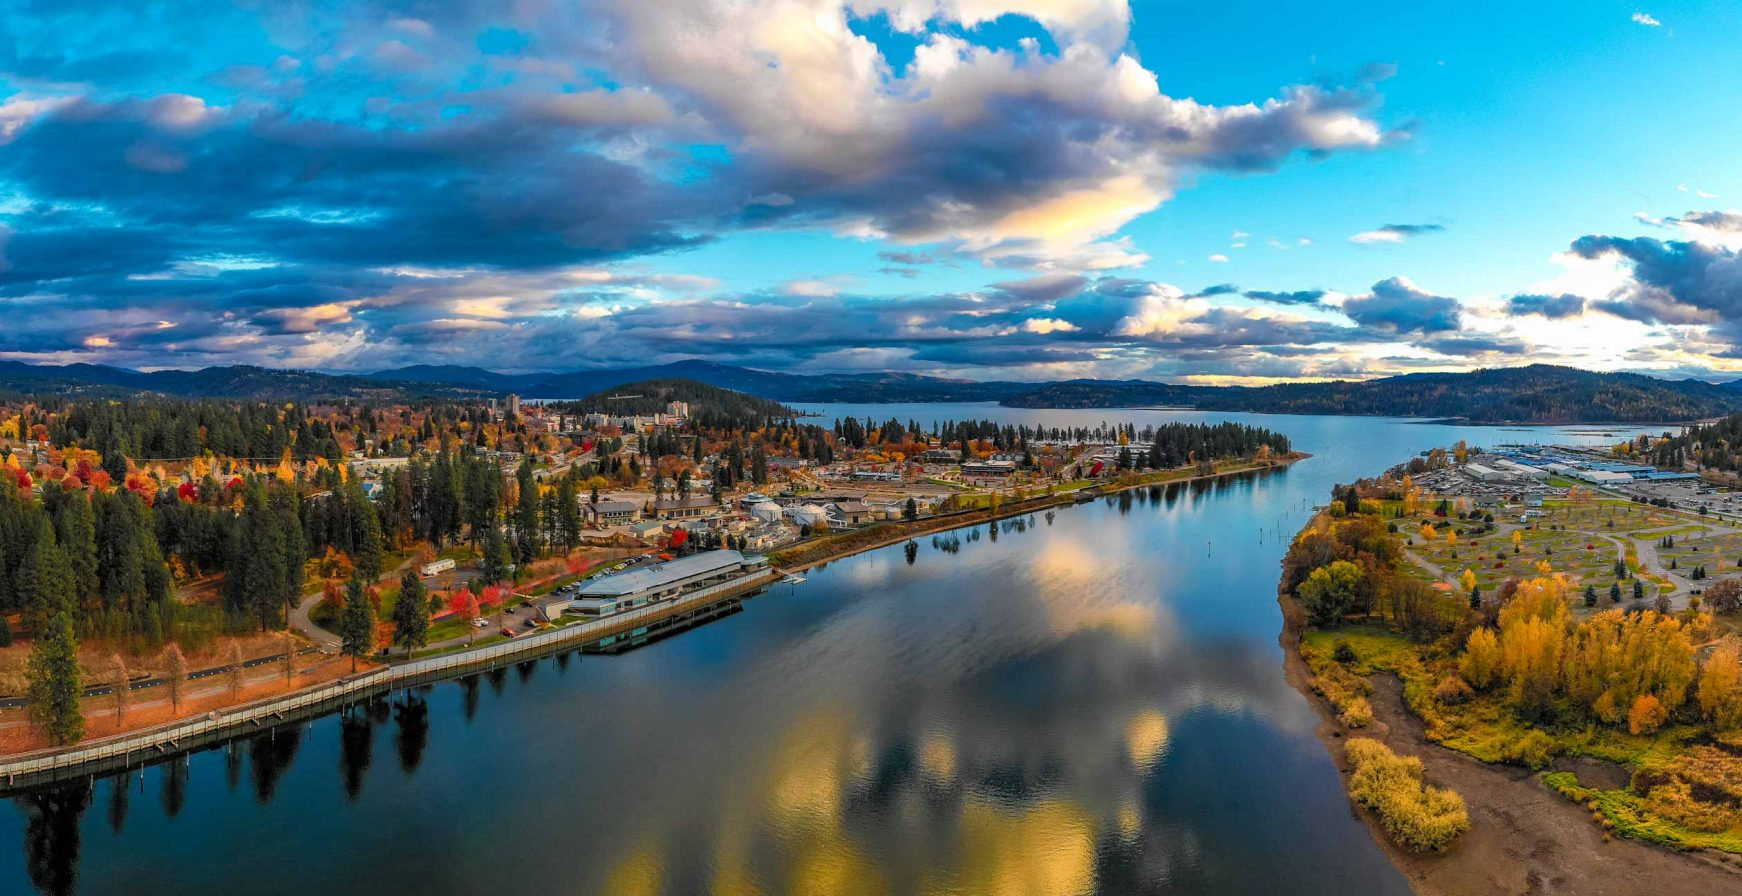 Trail of the Coeur d'Alenes